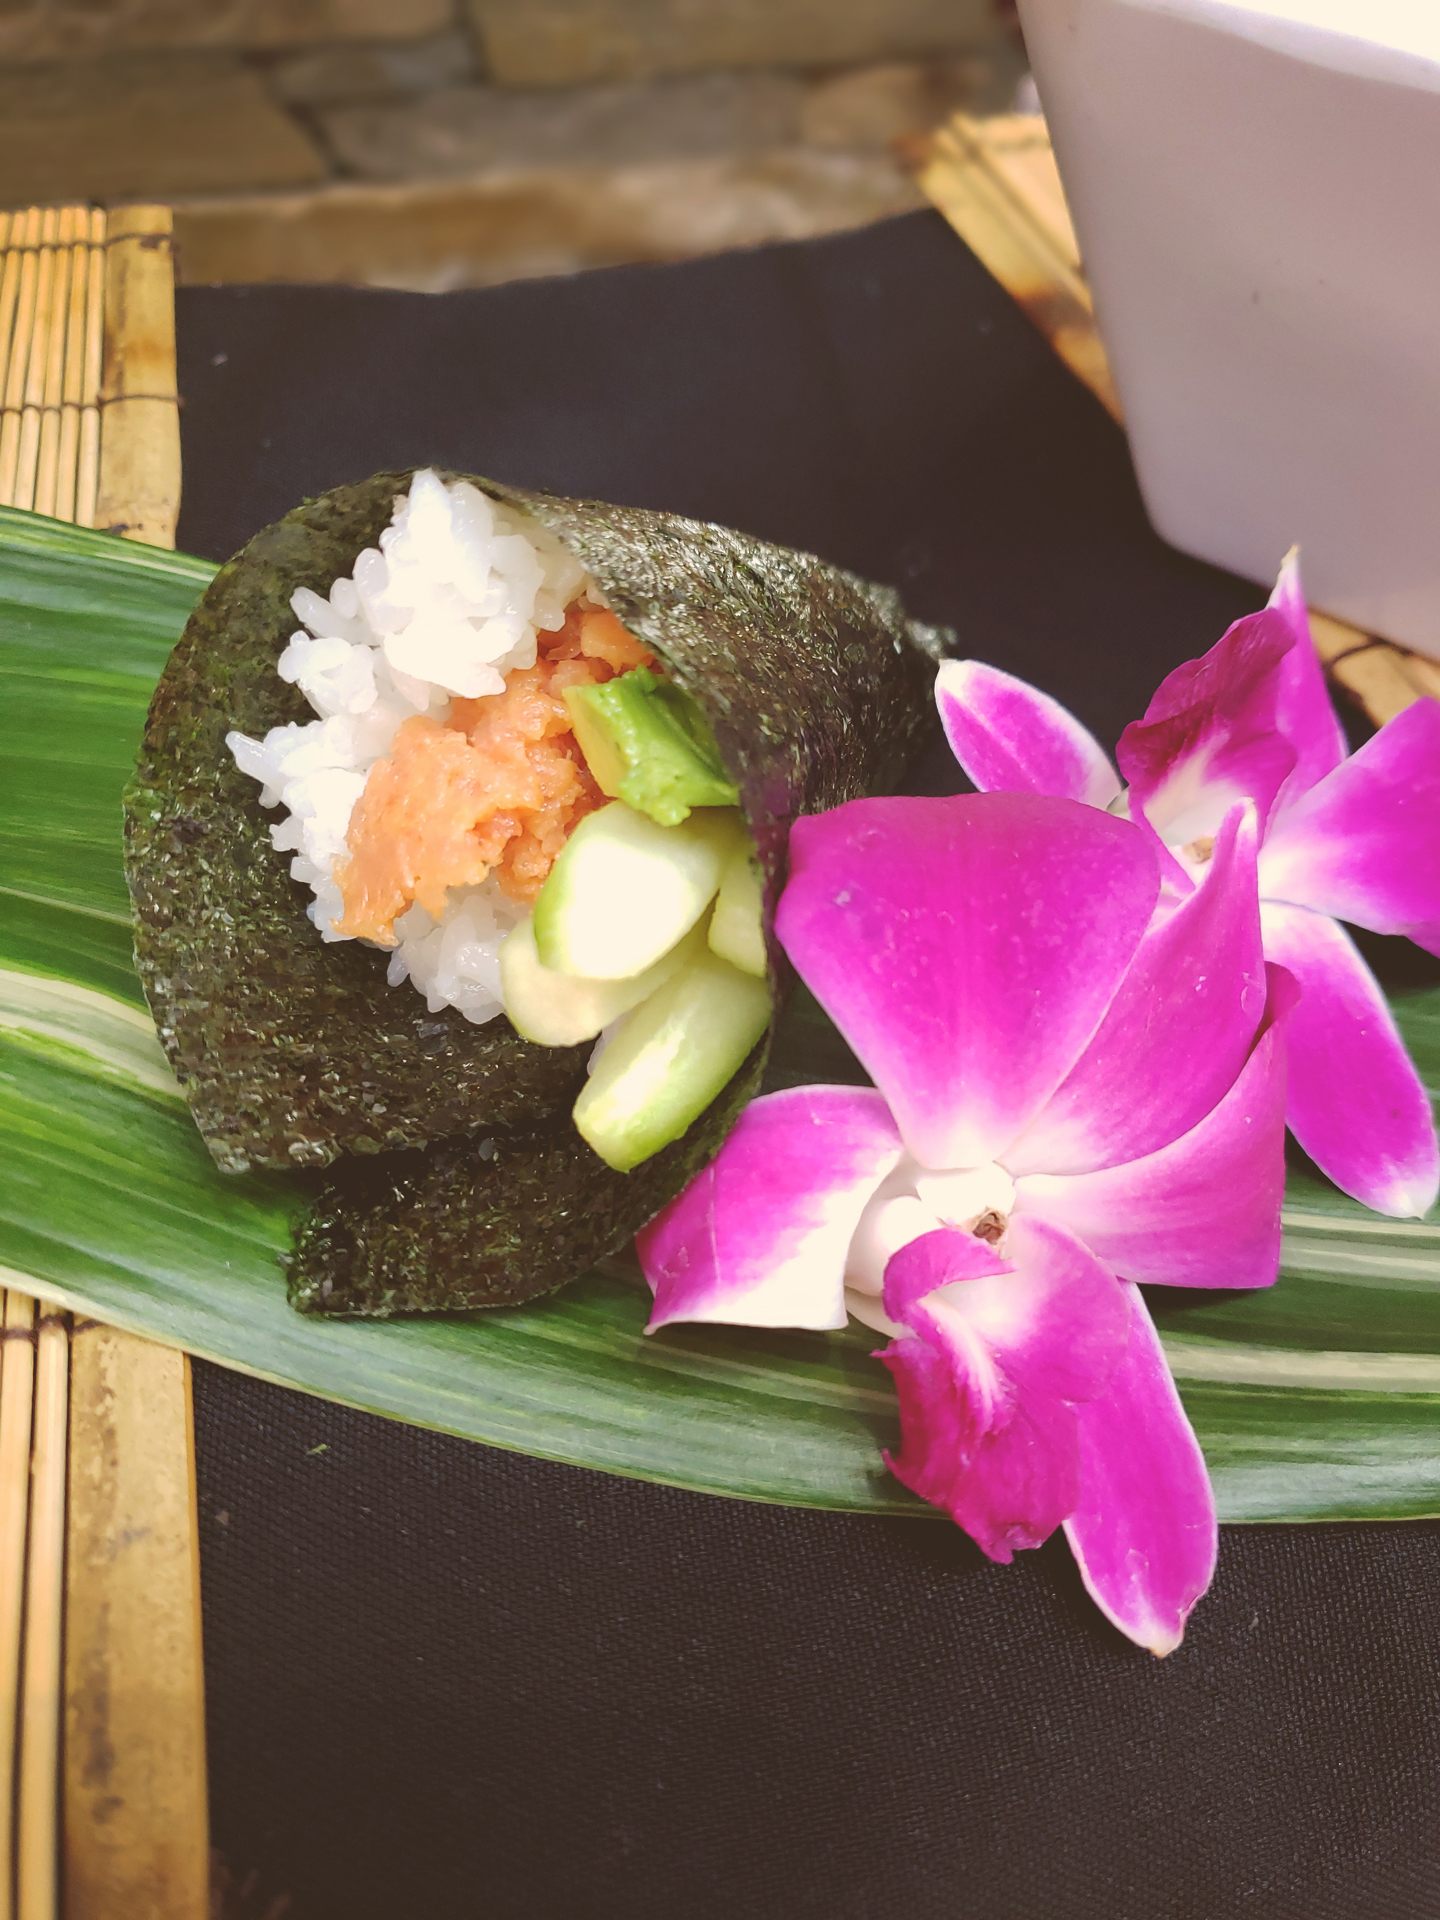 akioni-catering-sushi-teppanyaki-sashimi-authentic-japanese-cuisine-hawaiian-los-angeles.jpg